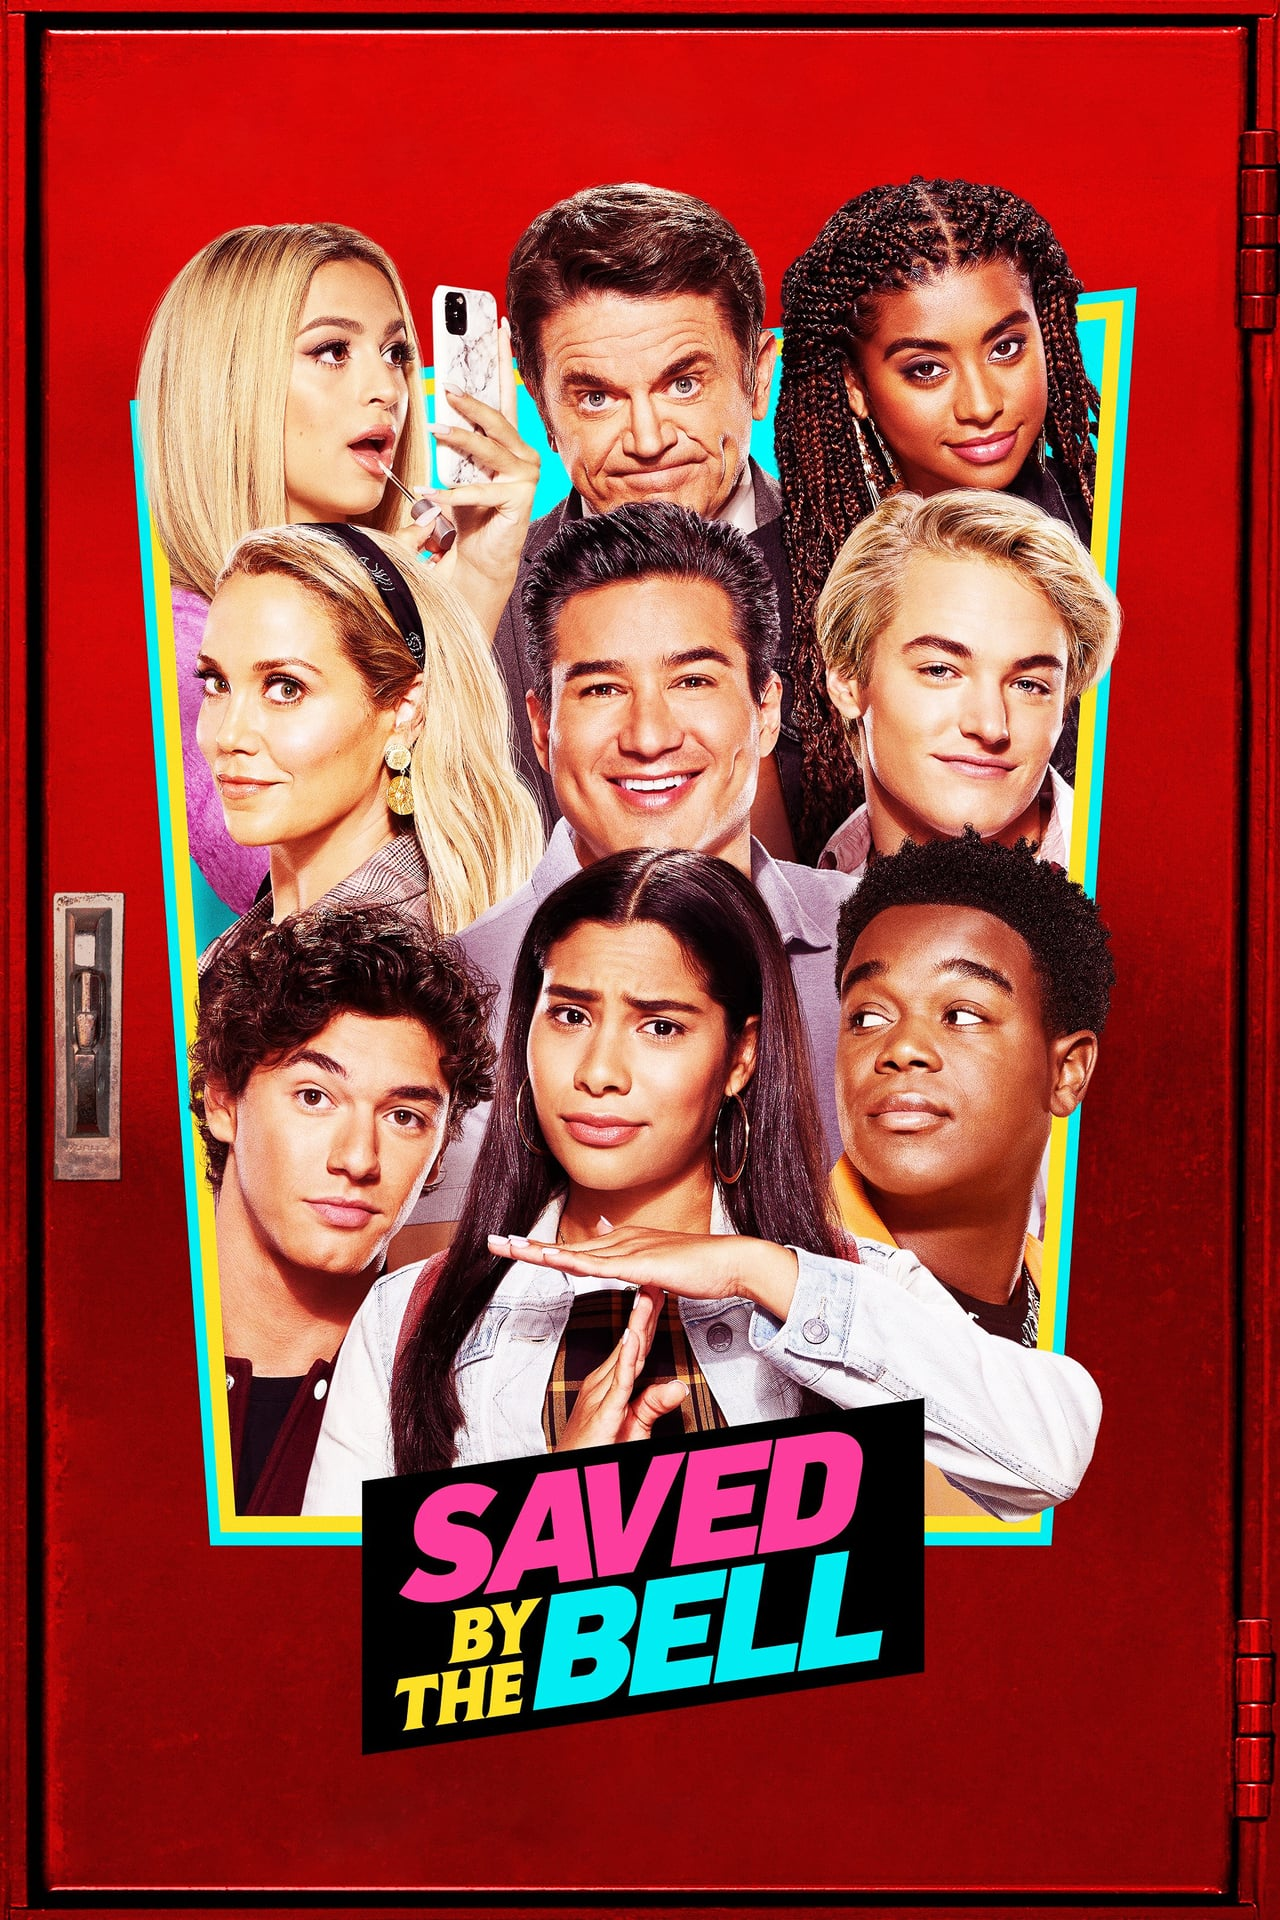 Saved by the Bell (season 1)